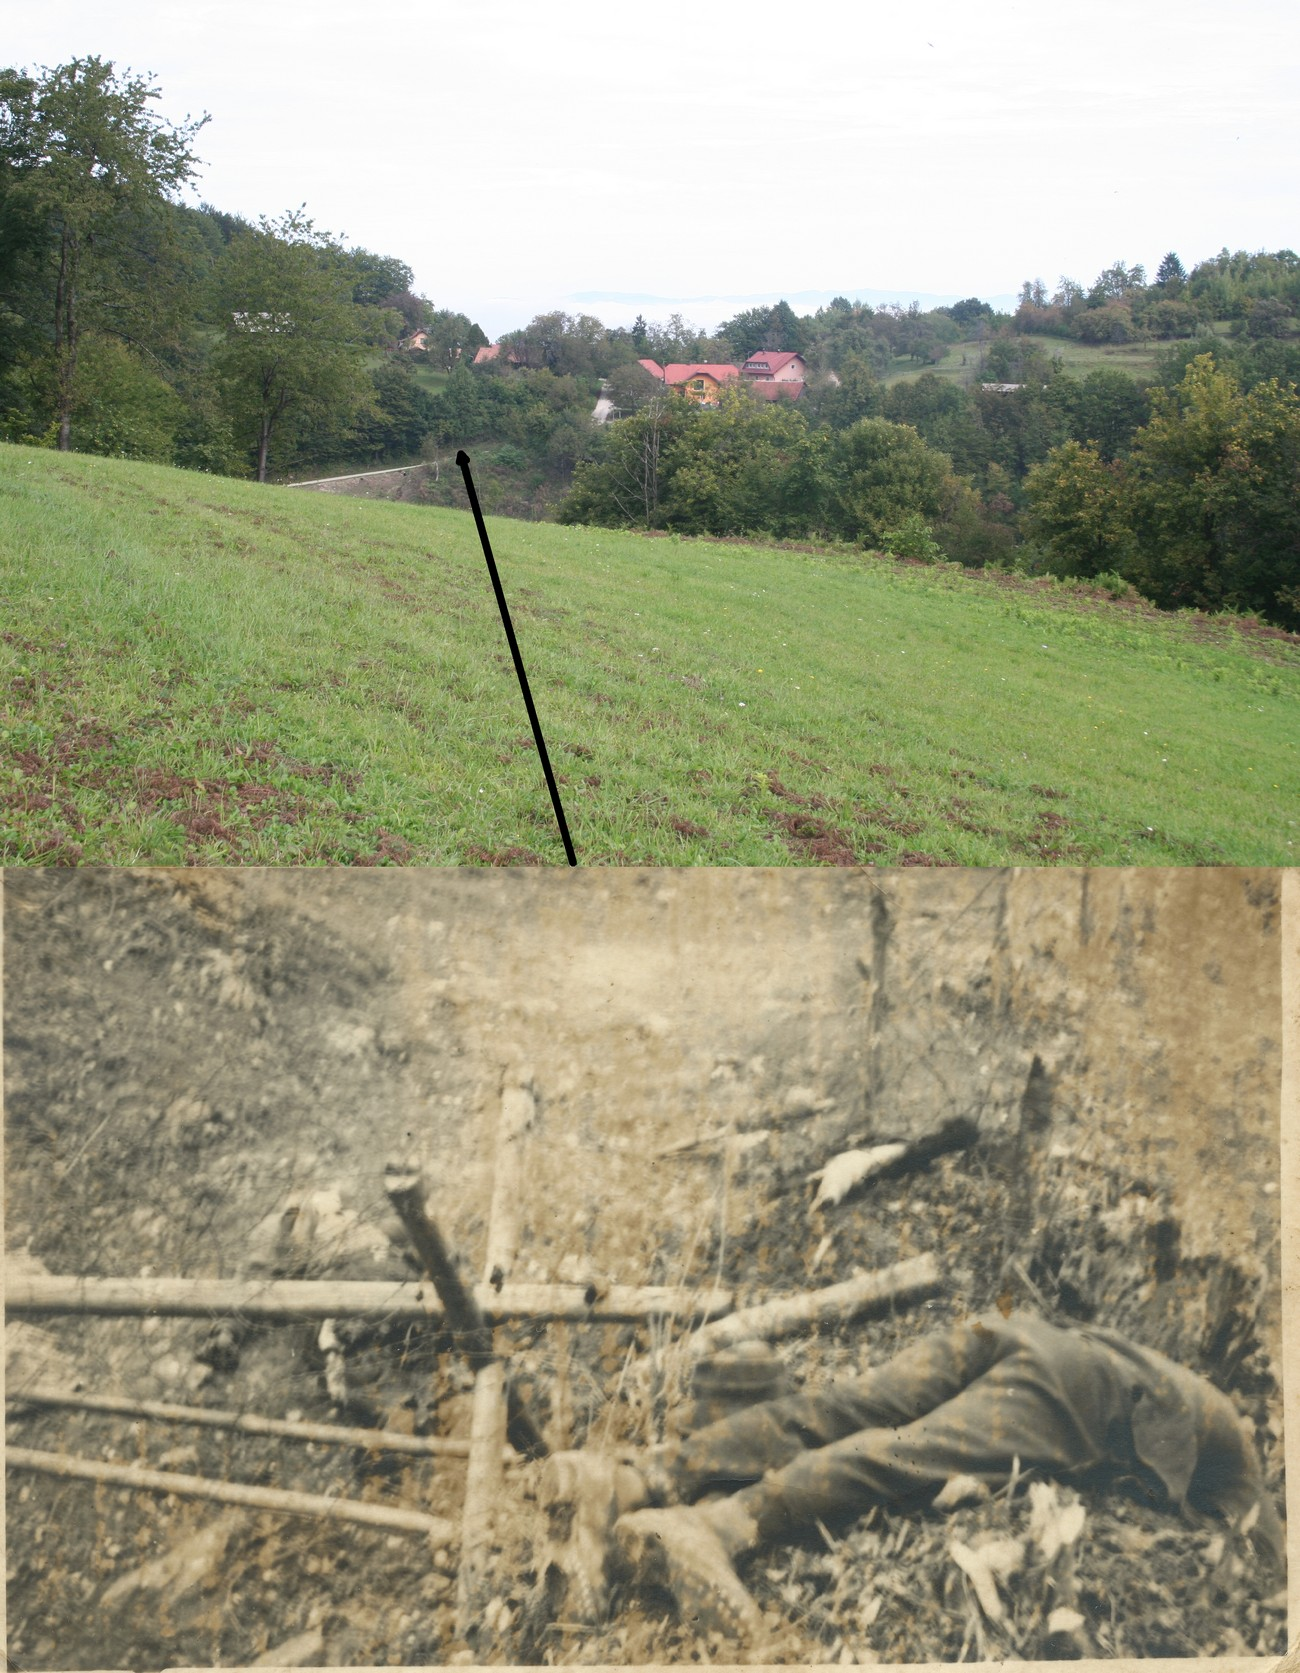 The village of Čedem was given to Croatia. The picture shows the village of Kamence, 400 metres north of Čedem. The border ran below the houses in the picture. A mine placed on the border killed Ivan Žurko and Alojz Kovačič on 6 December. Author of the top photograph: Bojan Balkovec. The bottom photograph is kept by: Antonija Erklavec.